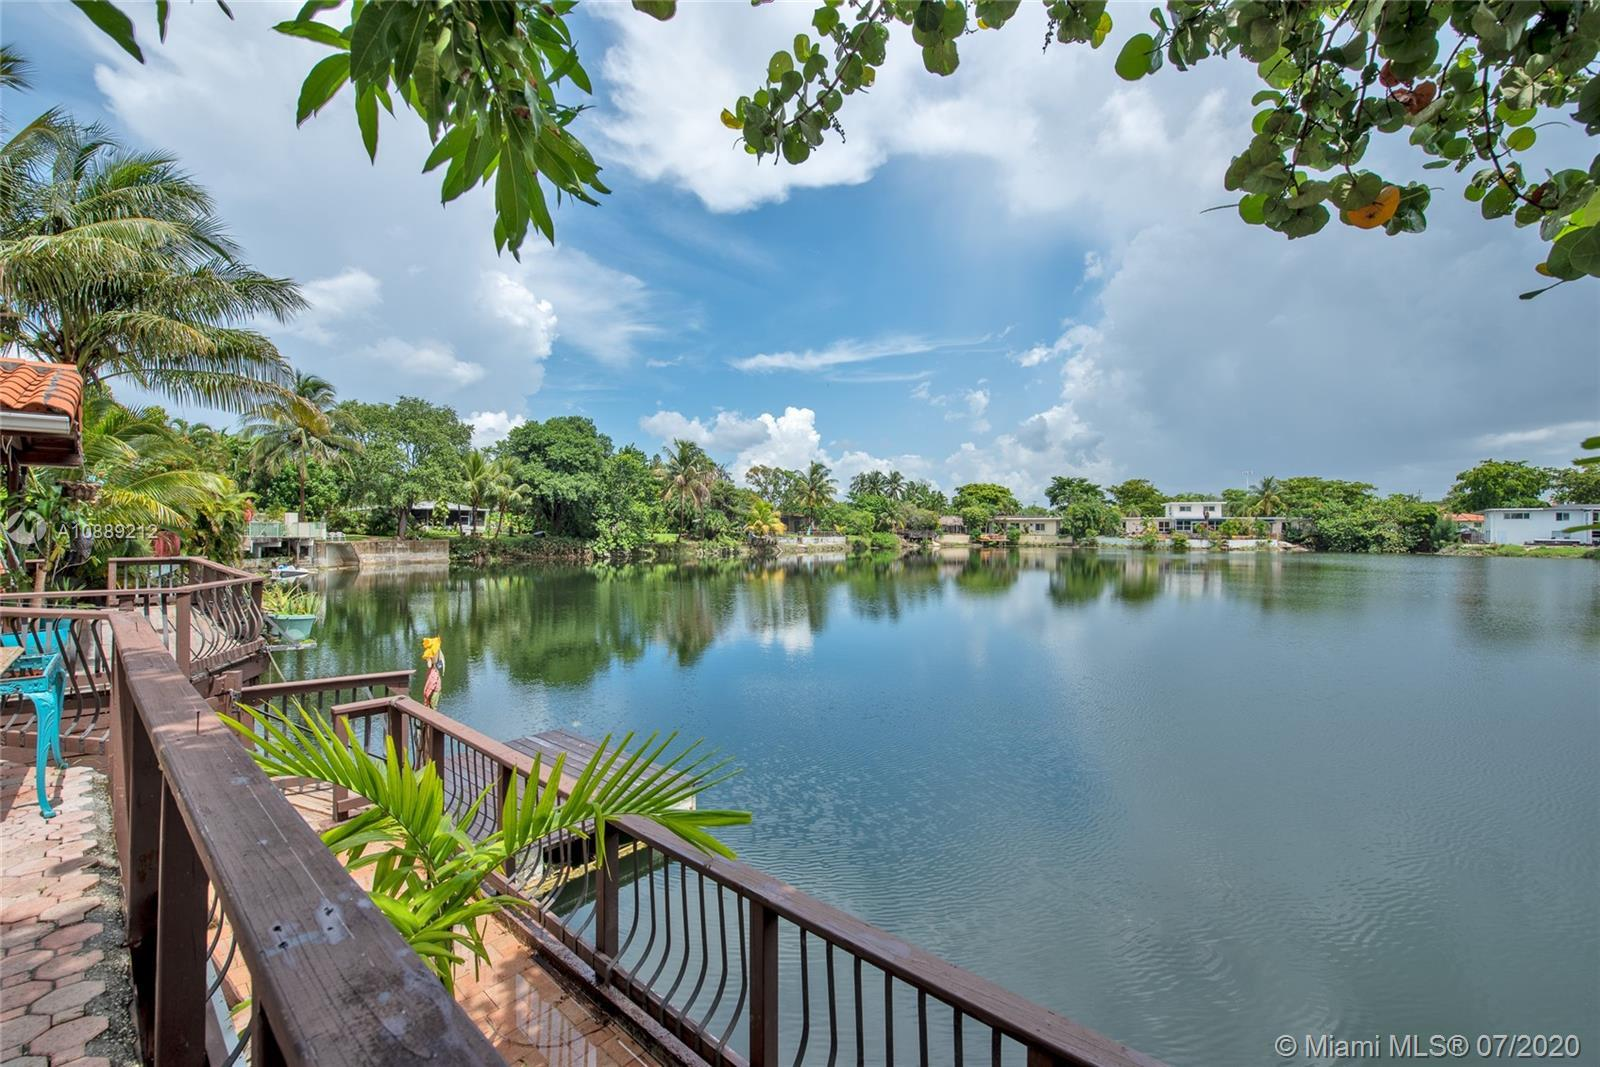 Beautiful lakefront home in Miami Springs! Features 3 bedrooms (possible 4th bedroom), 2 baths, impact resistant doors, accordion shutters on the windows, remodeled kitchen and baths, spacious deck overlooking the lake, carport, paver driveway and so much more!